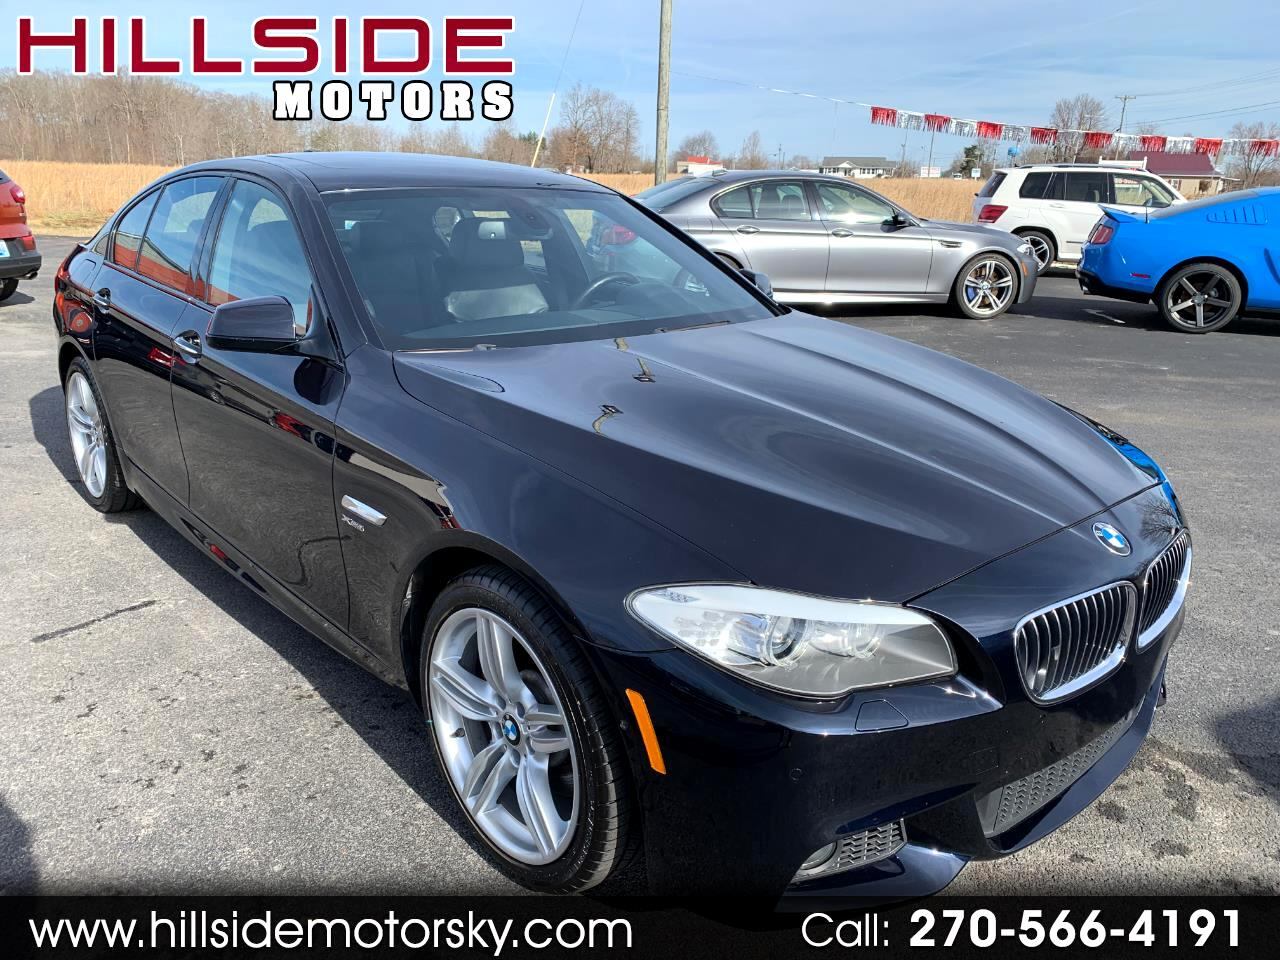 2011 BMW 5-Series 535xi M sport